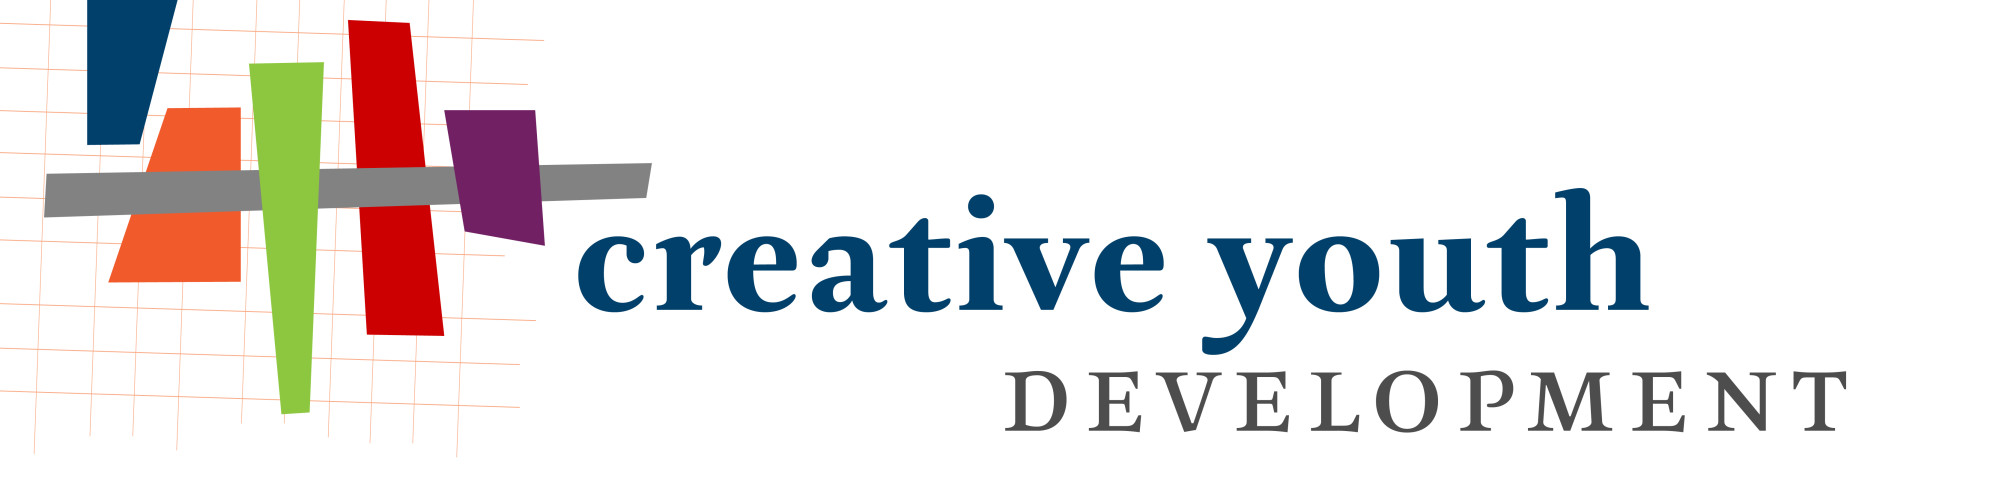 Creative Youth Development National Partnership